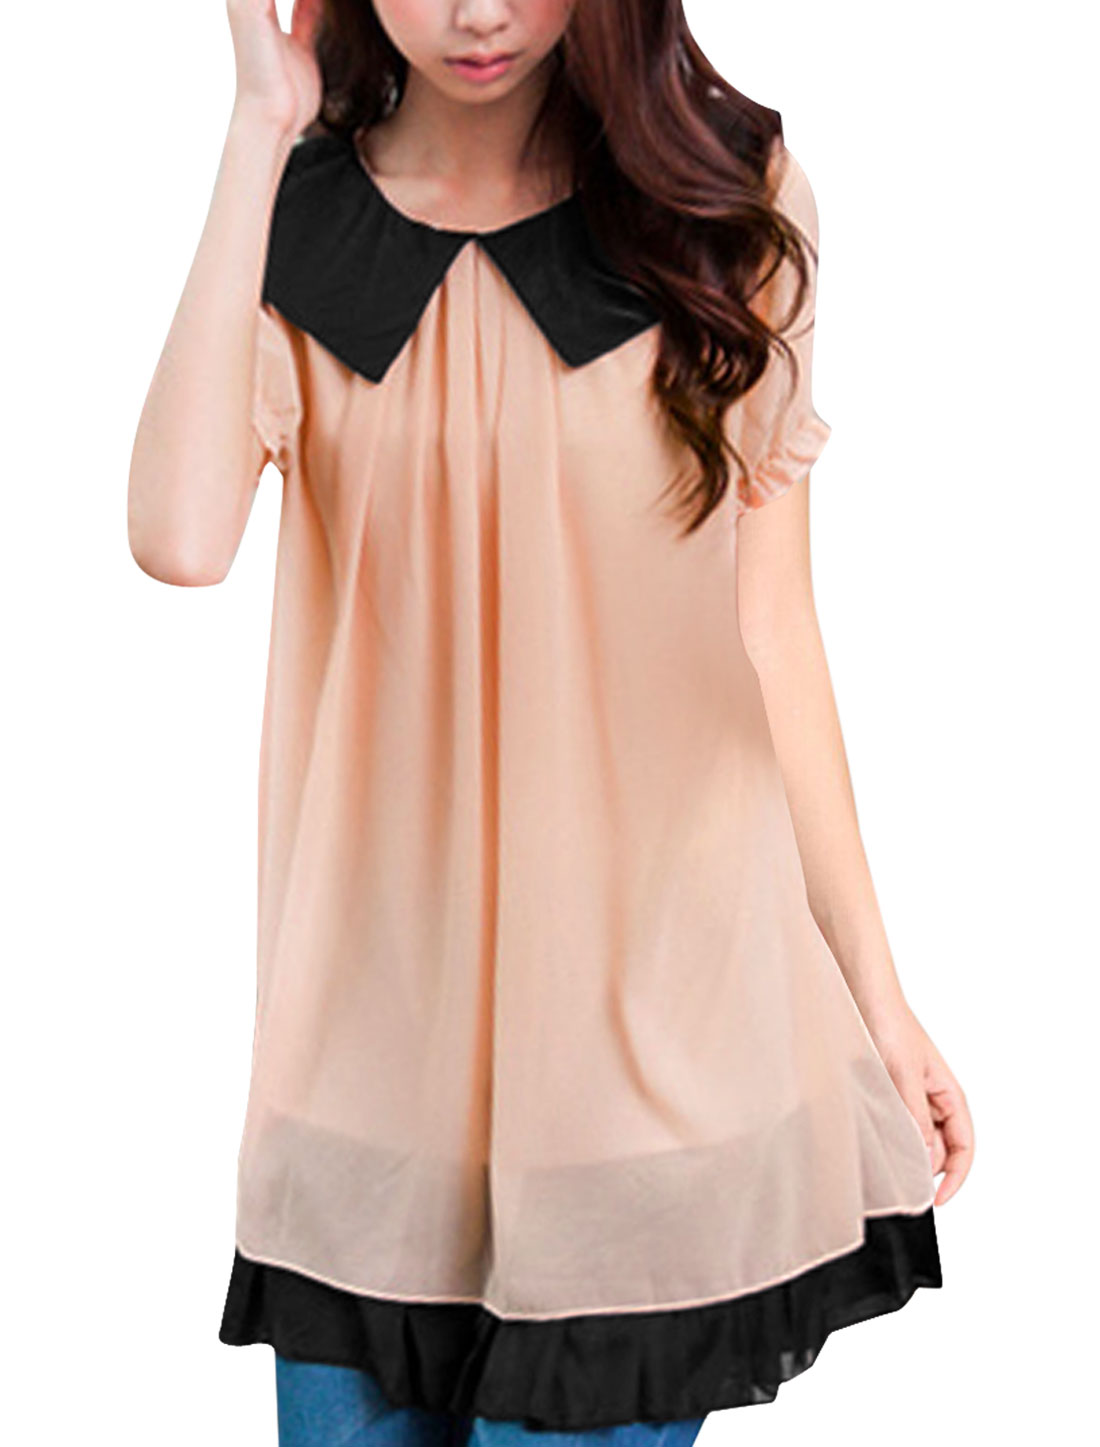 Lady Pink Peter Pan Collar Puff Sleeve Fake Two Pieces Tunic Shirt Dress XS